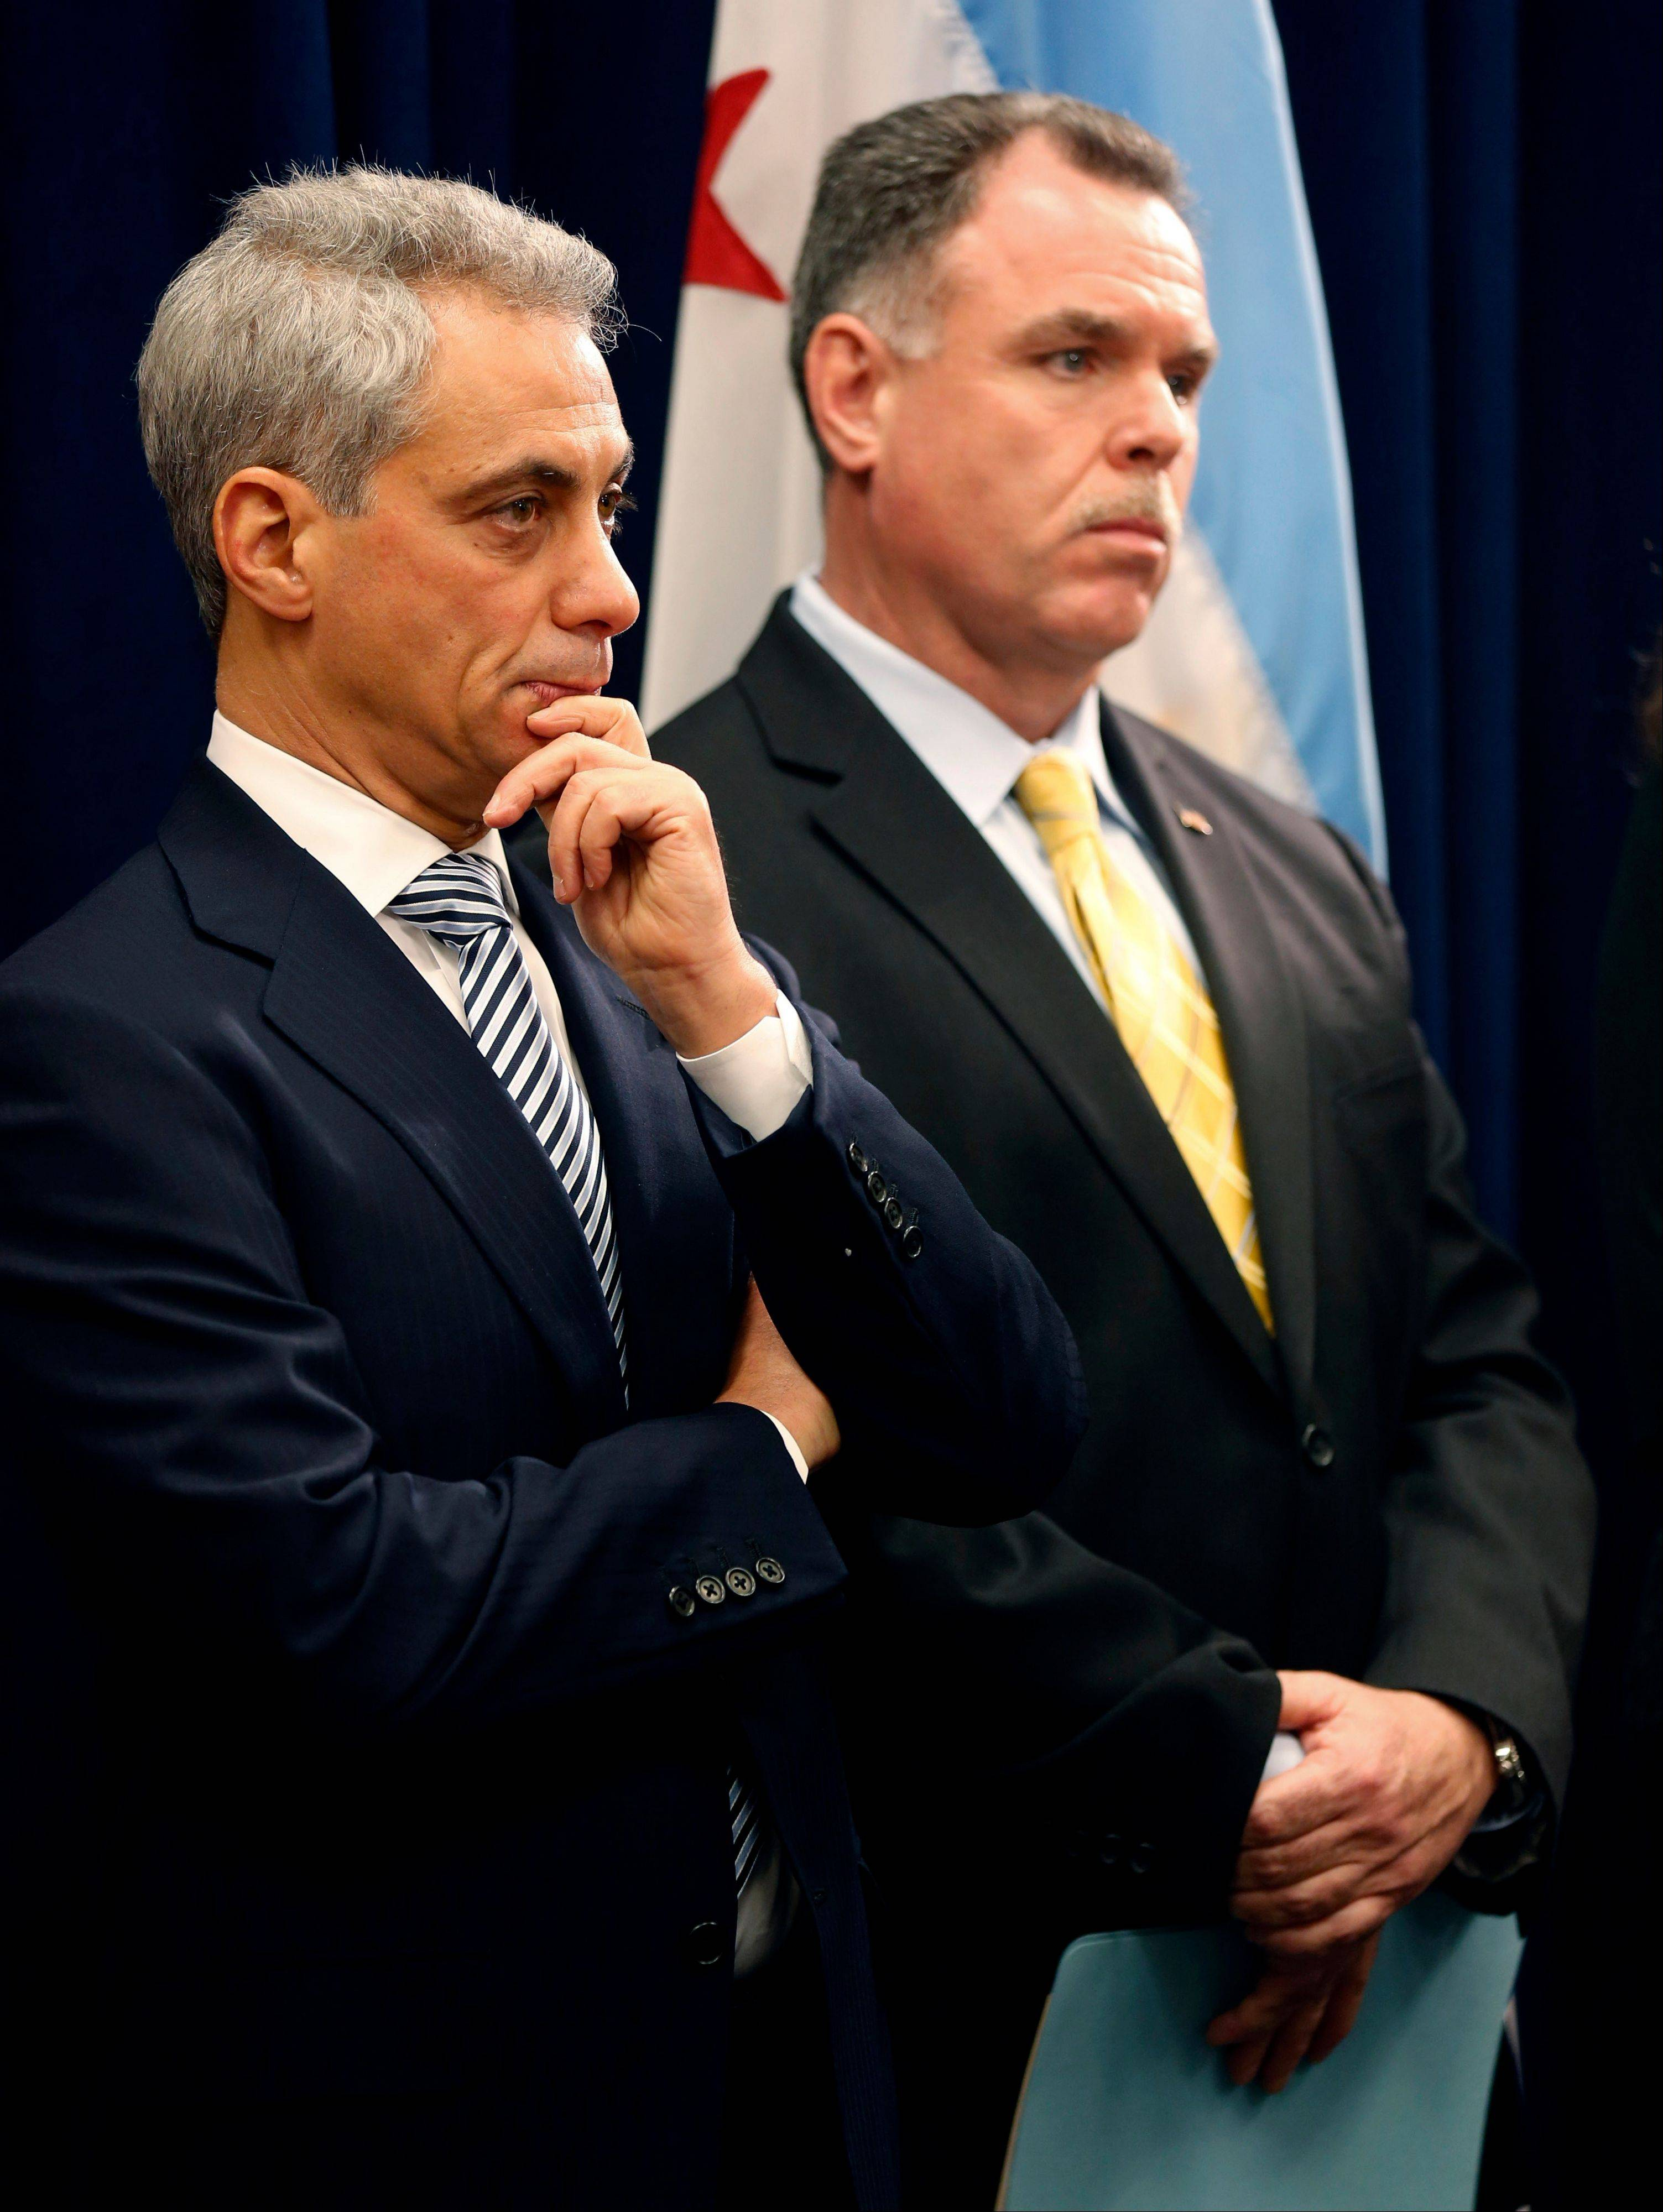 Chicago Mayor Rahm Emanuel, left, and Police Superintendent Gary McCarthy listen during a news conference pushing tougher gun laws Thursday at Chicago City Hall.